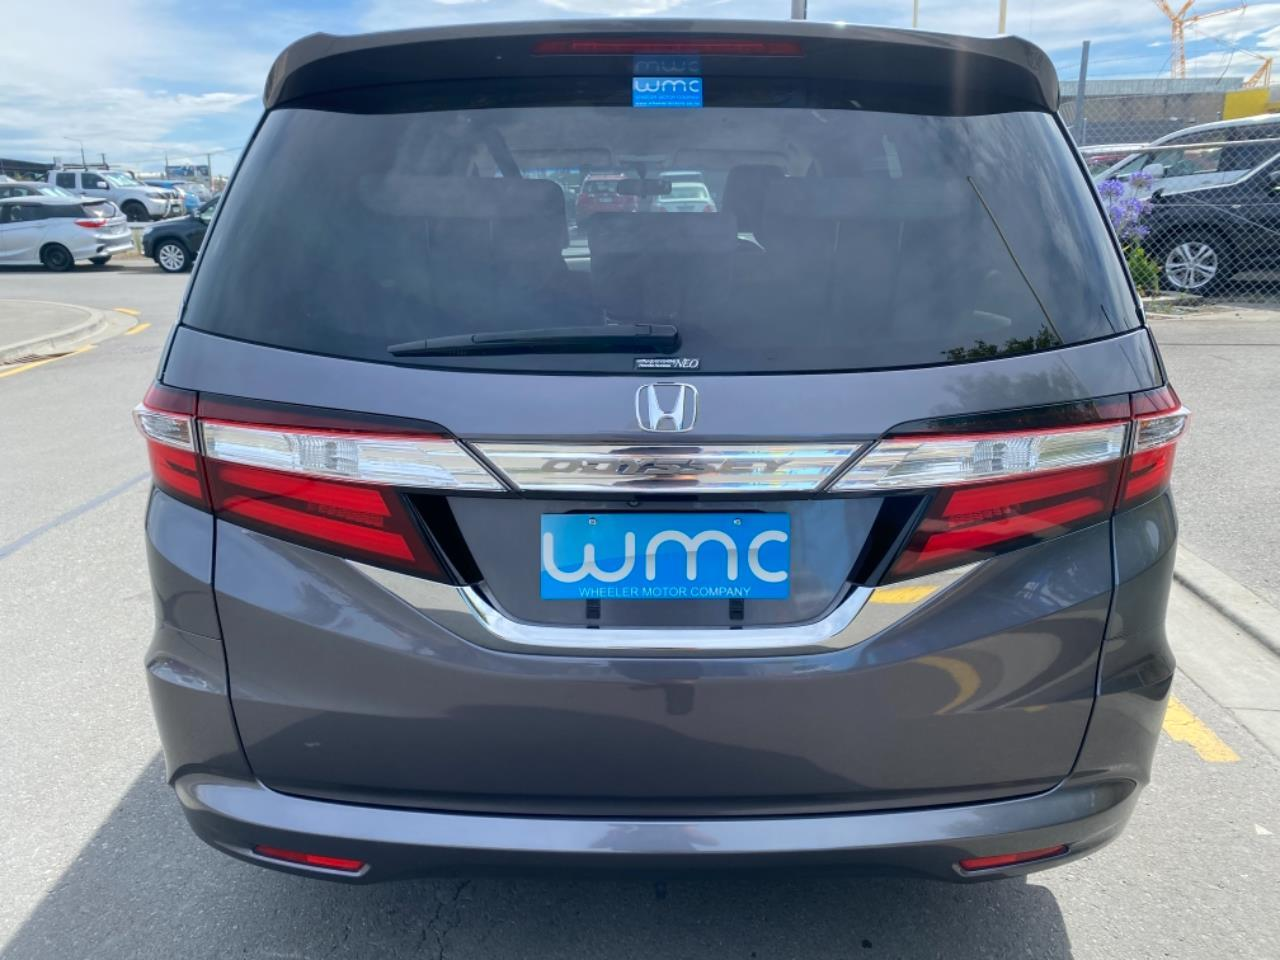 image-6, 2013 Honda Odyssey G-EX Package 7-Seater at Christchurch